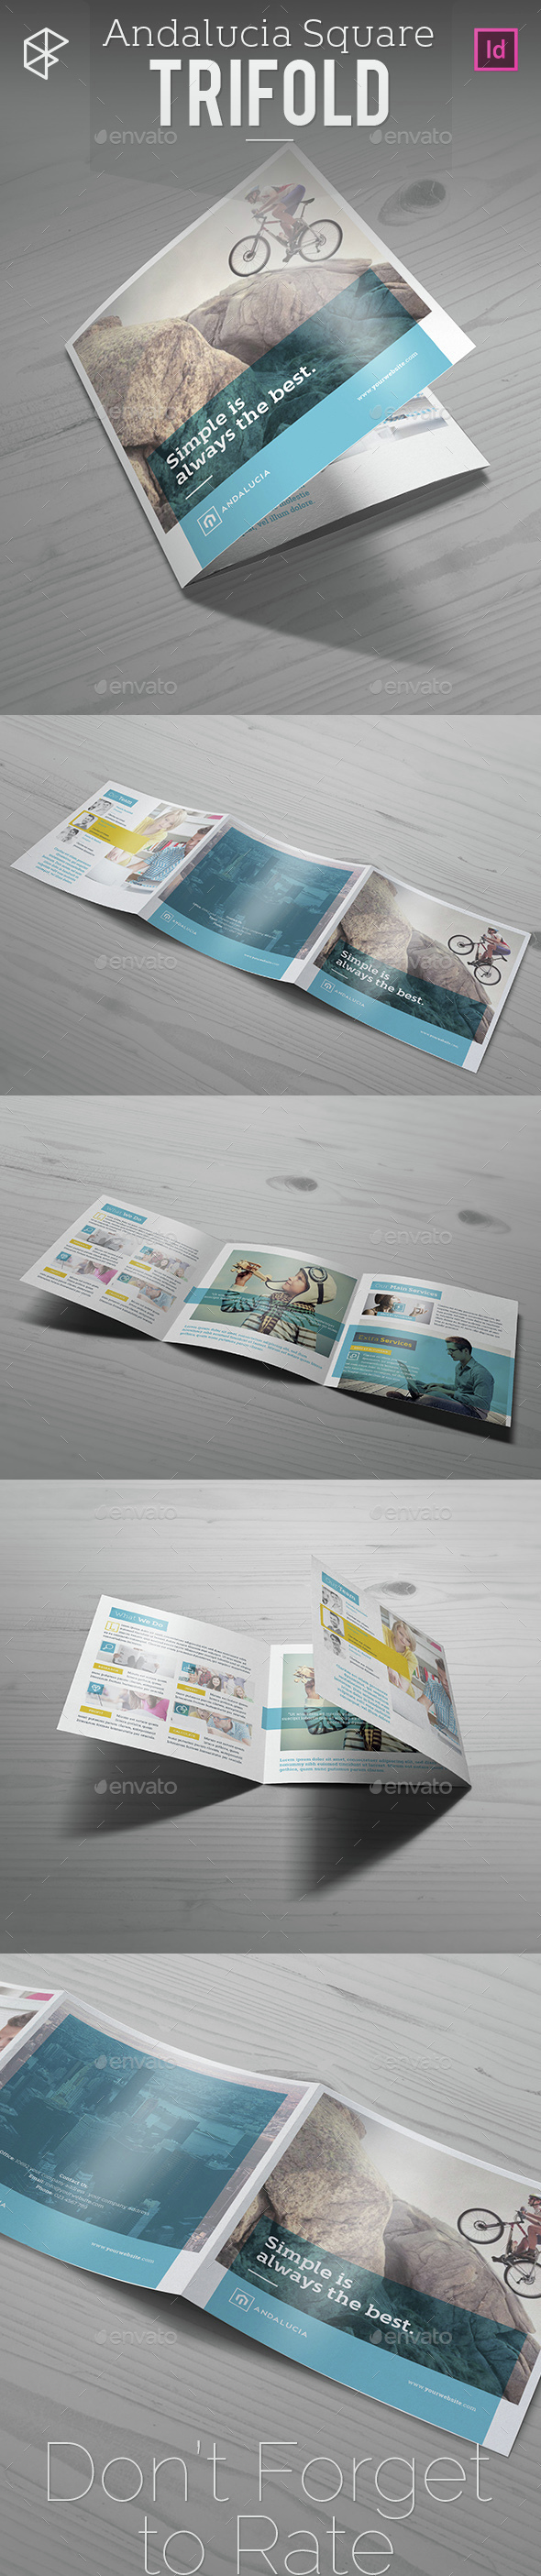 Andalucia Square Trifold - Corporate Brochures